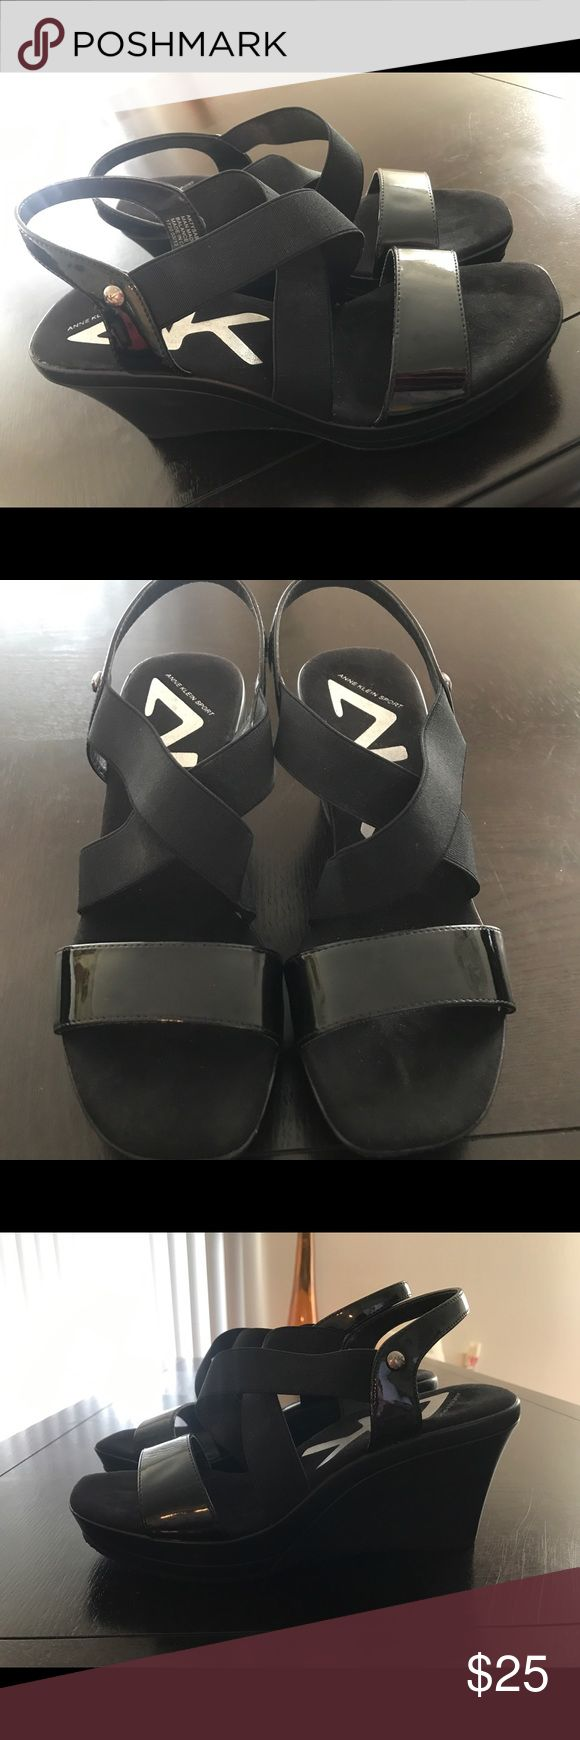 Anne Klein Sport Sandal Wedges size 7.5 Anne Klein sport Sandal Wedges size 7.5. Used but  in great condition. A small blemish can be seen on pictures, not noticeable Anne Klein Shoes Wedges